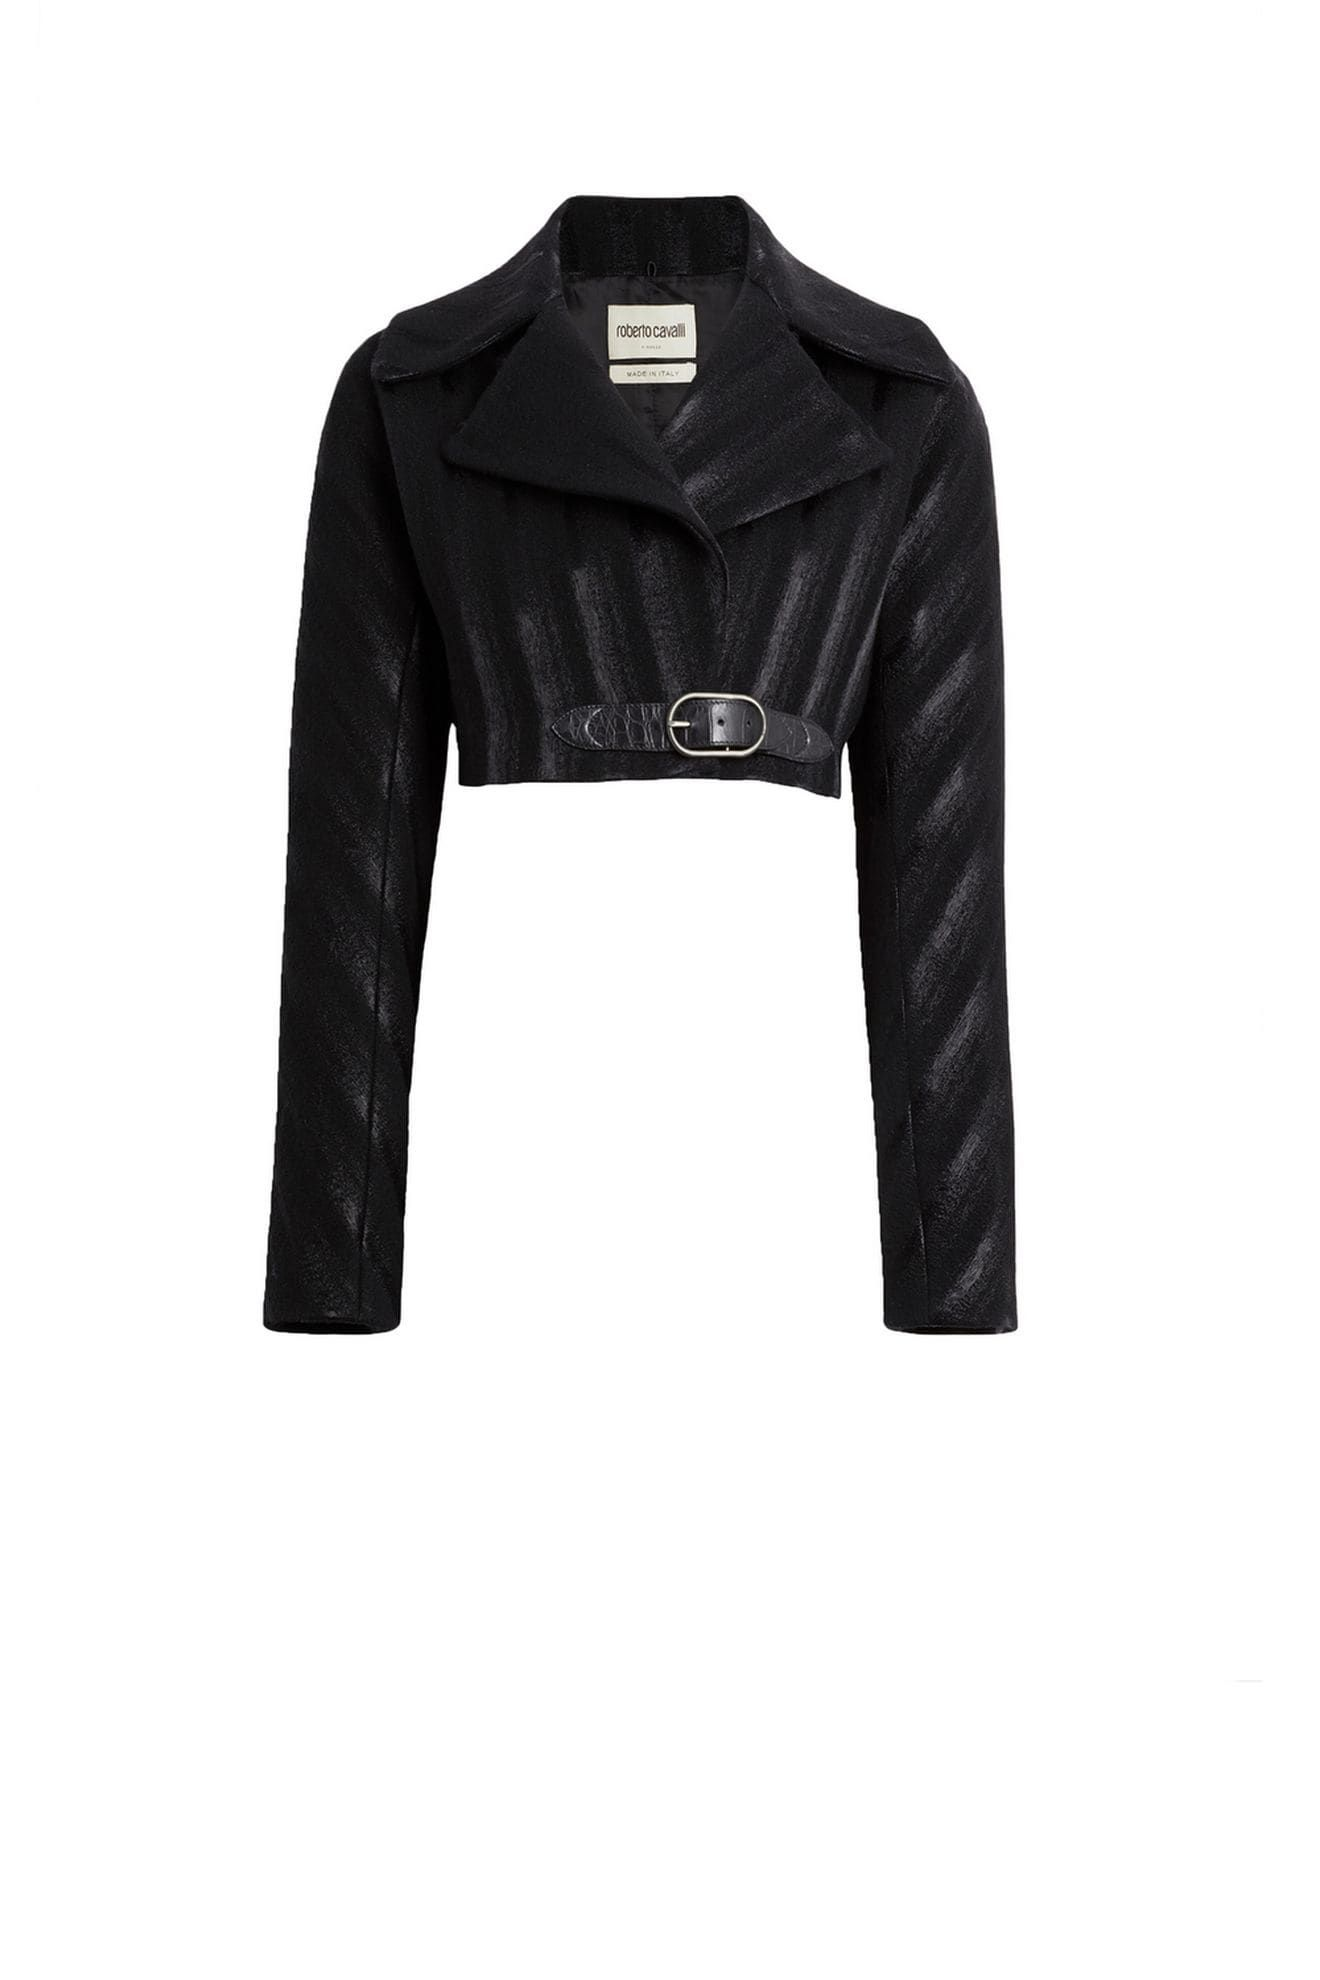 sports shoes e6778 6b94c Cropped black striped caban jacket in 2019   Coats and ...